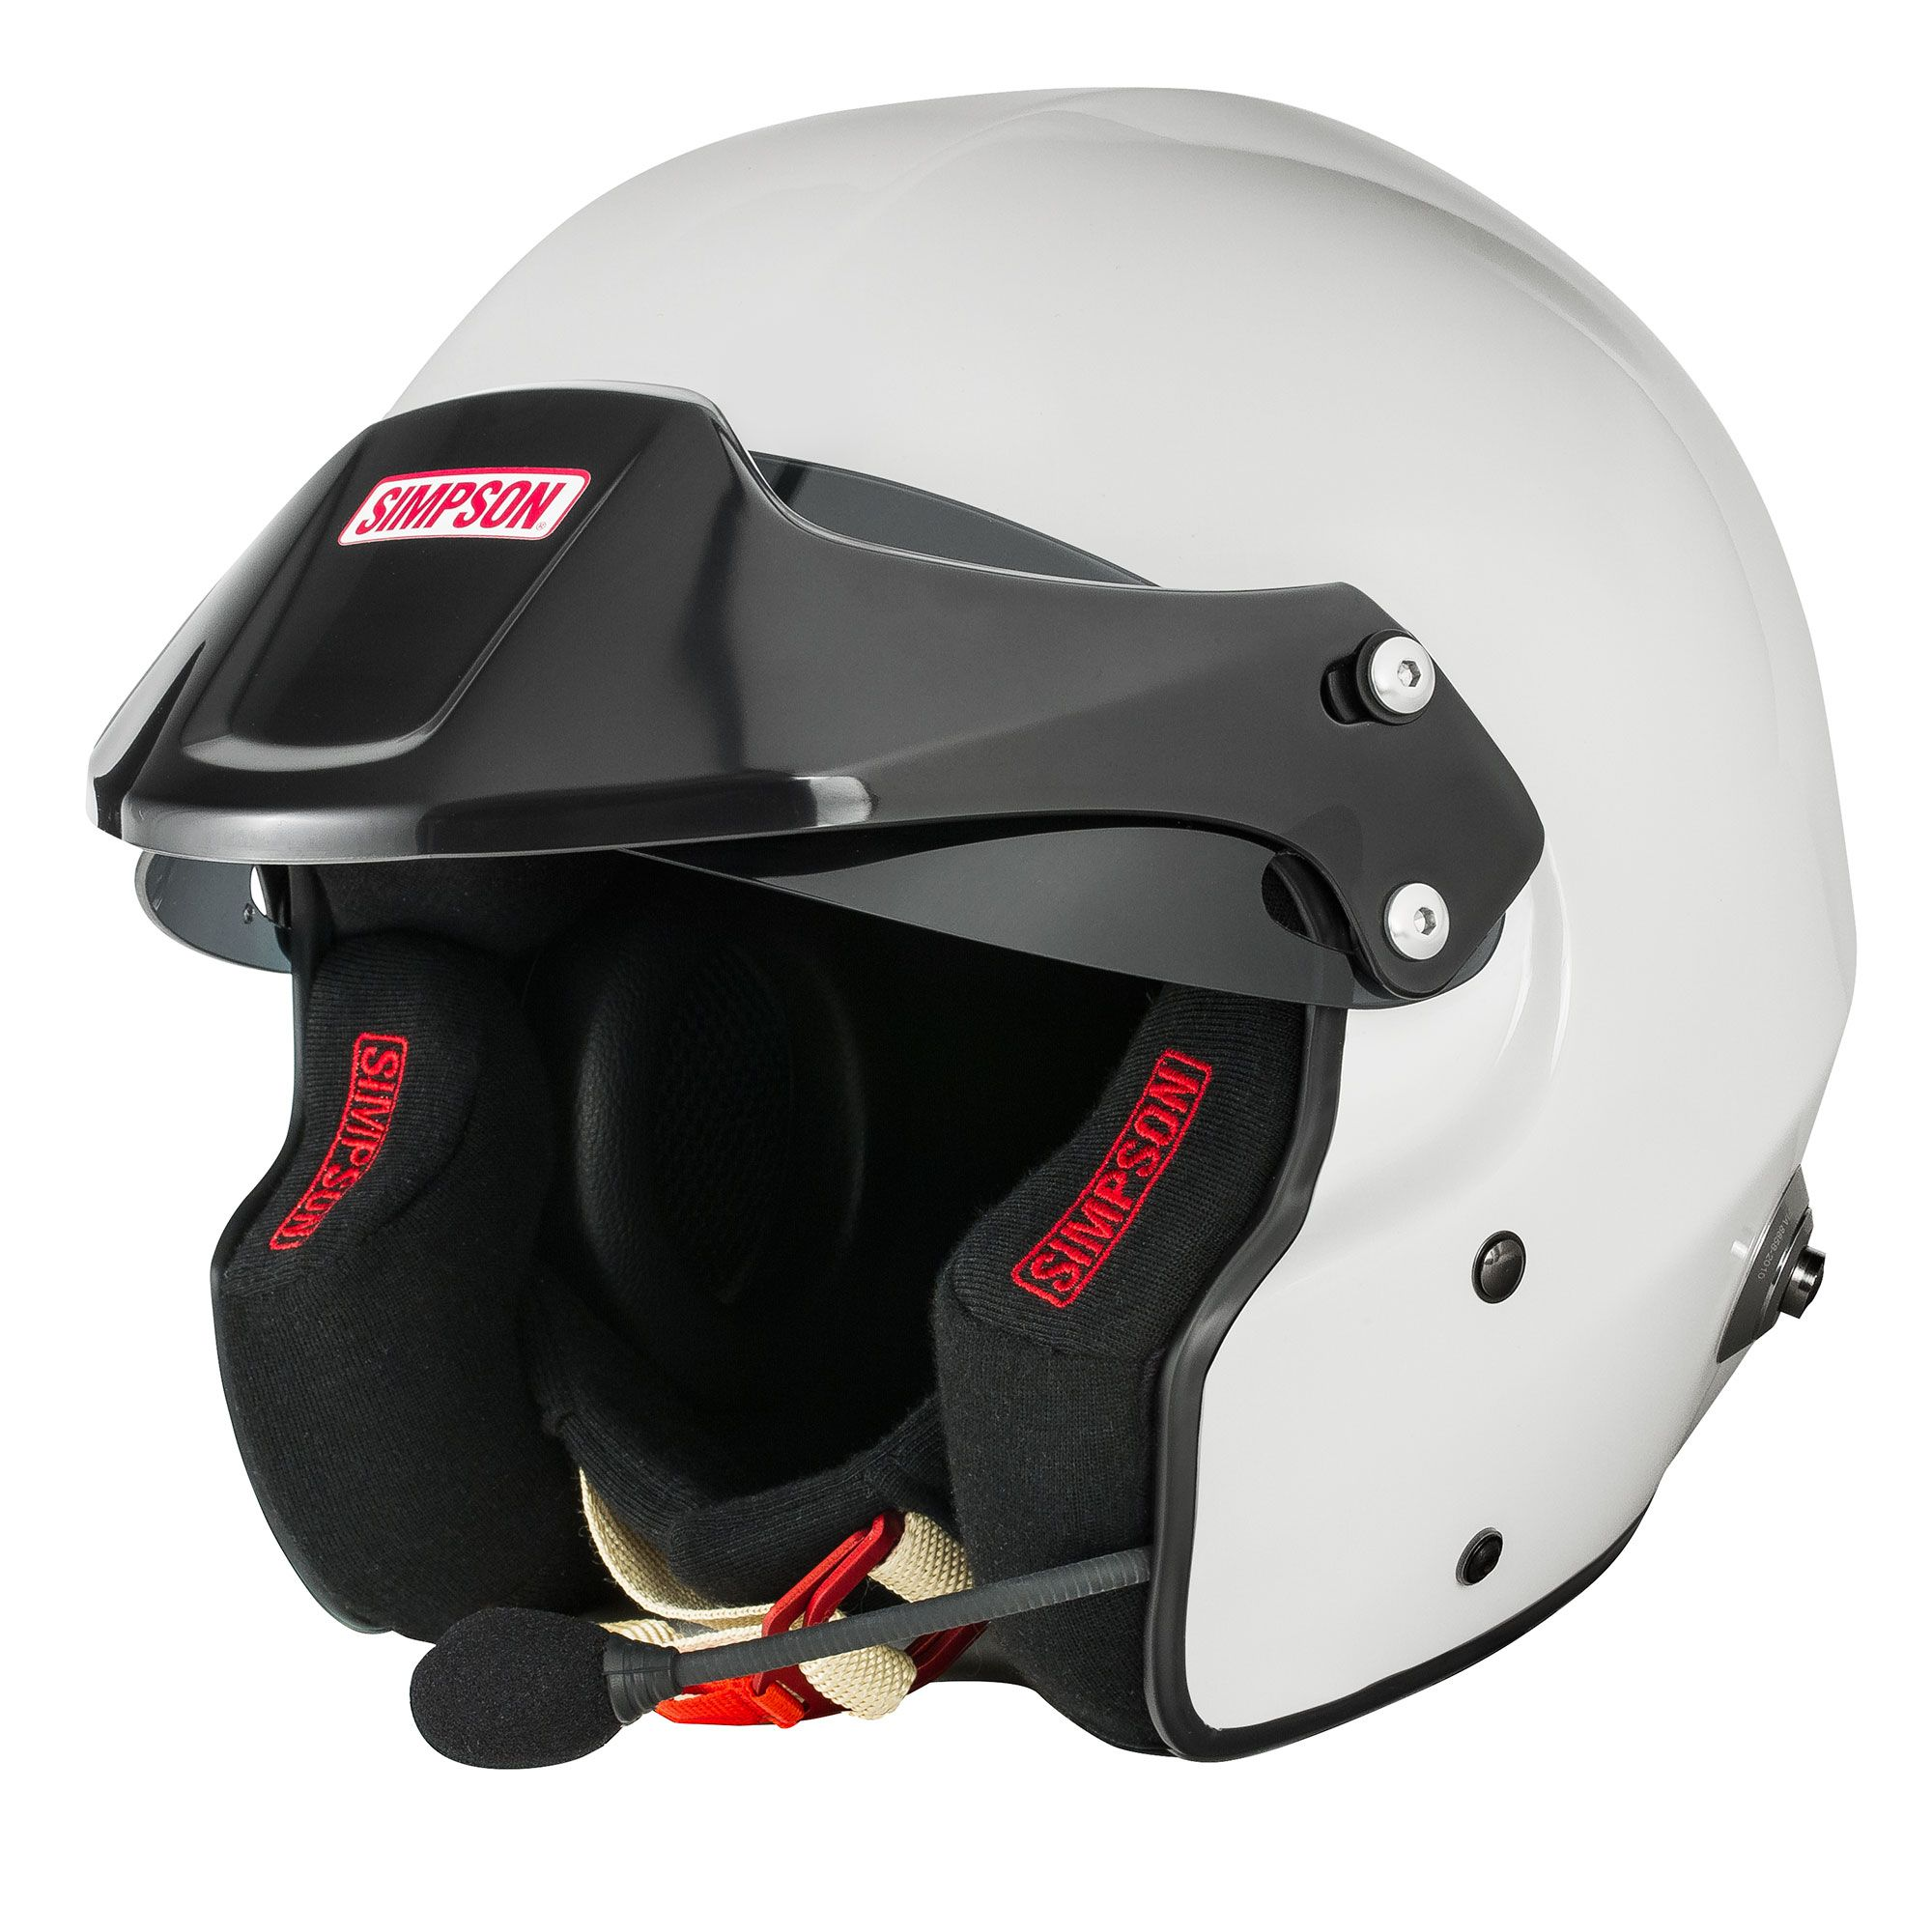 Simpson-Rally-FIA-8859-2015-Approved-Open-Face-Helmet-With-Intercom-amp-HANS-Posts miniatuur 11